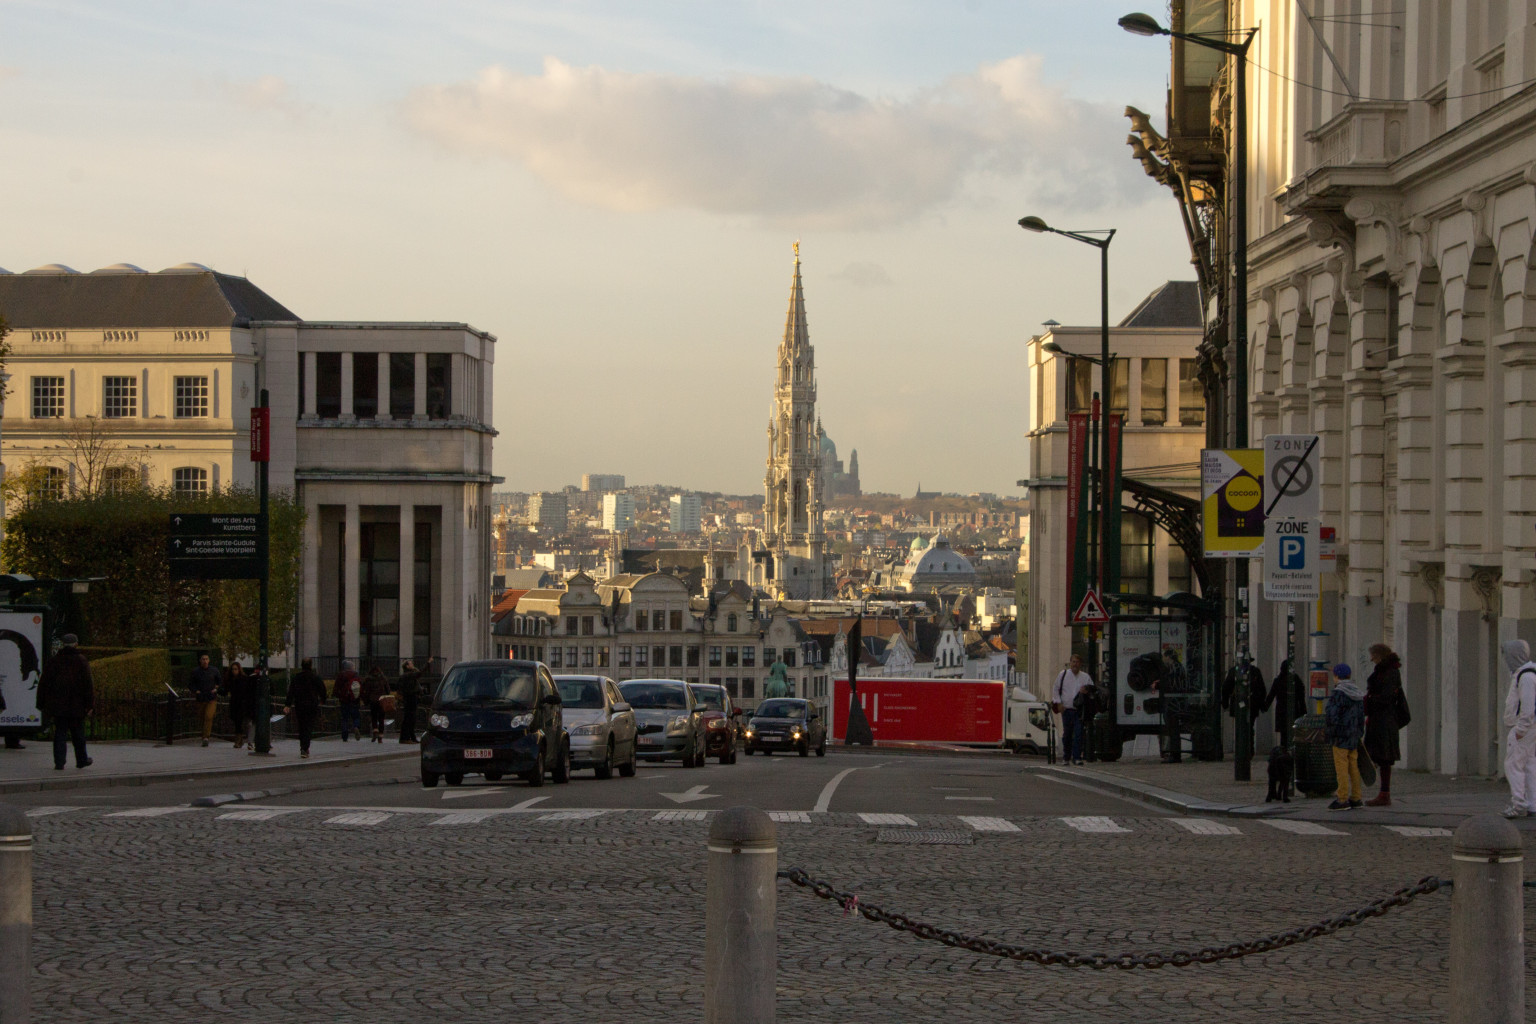 A nice first look down into Brussels proper, with the grand spire of the town hall dominating